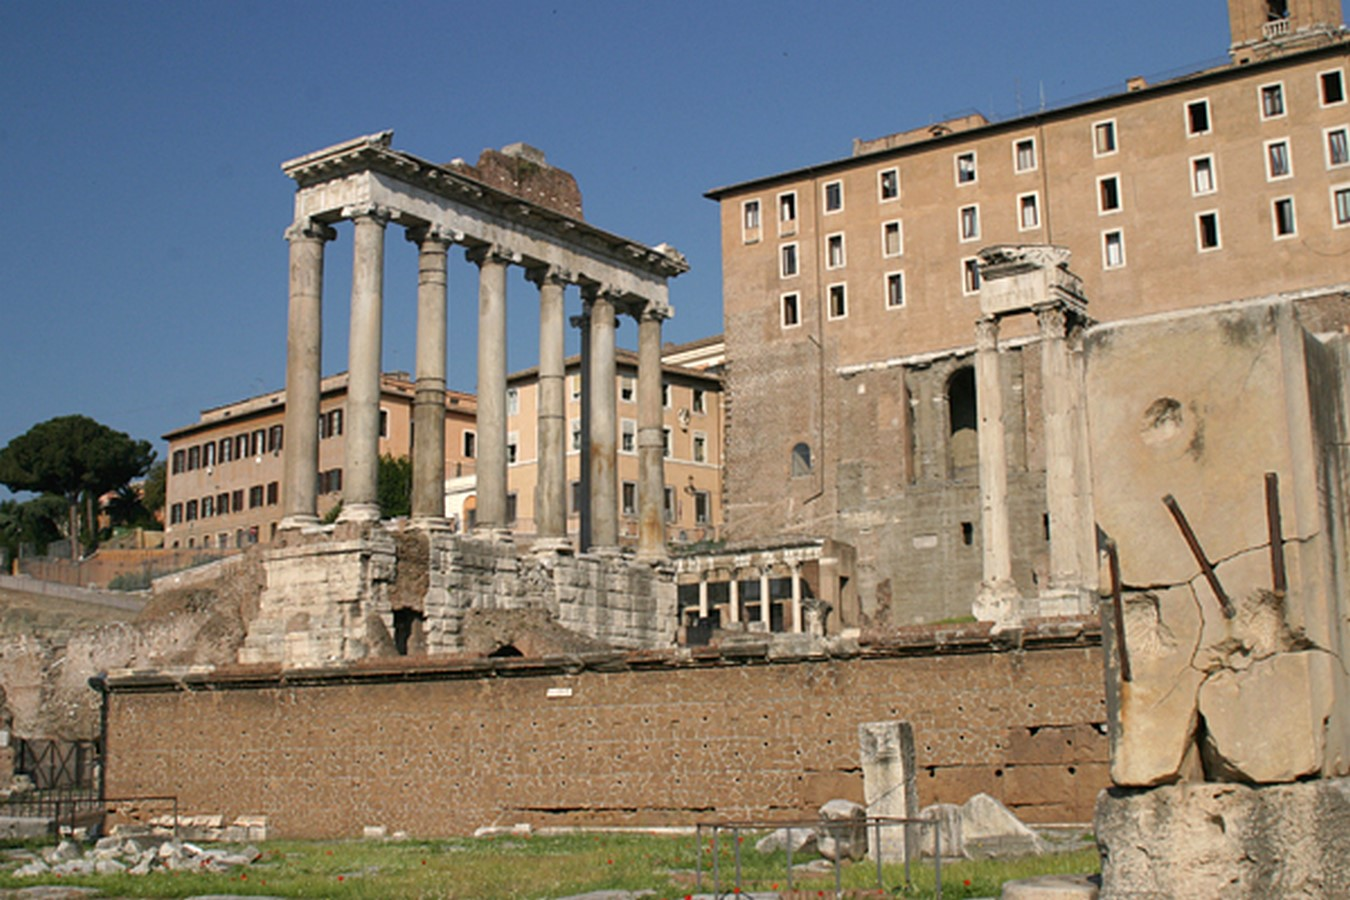 The Roman Forum, Rome: Heritage stuck in time - Sheet7